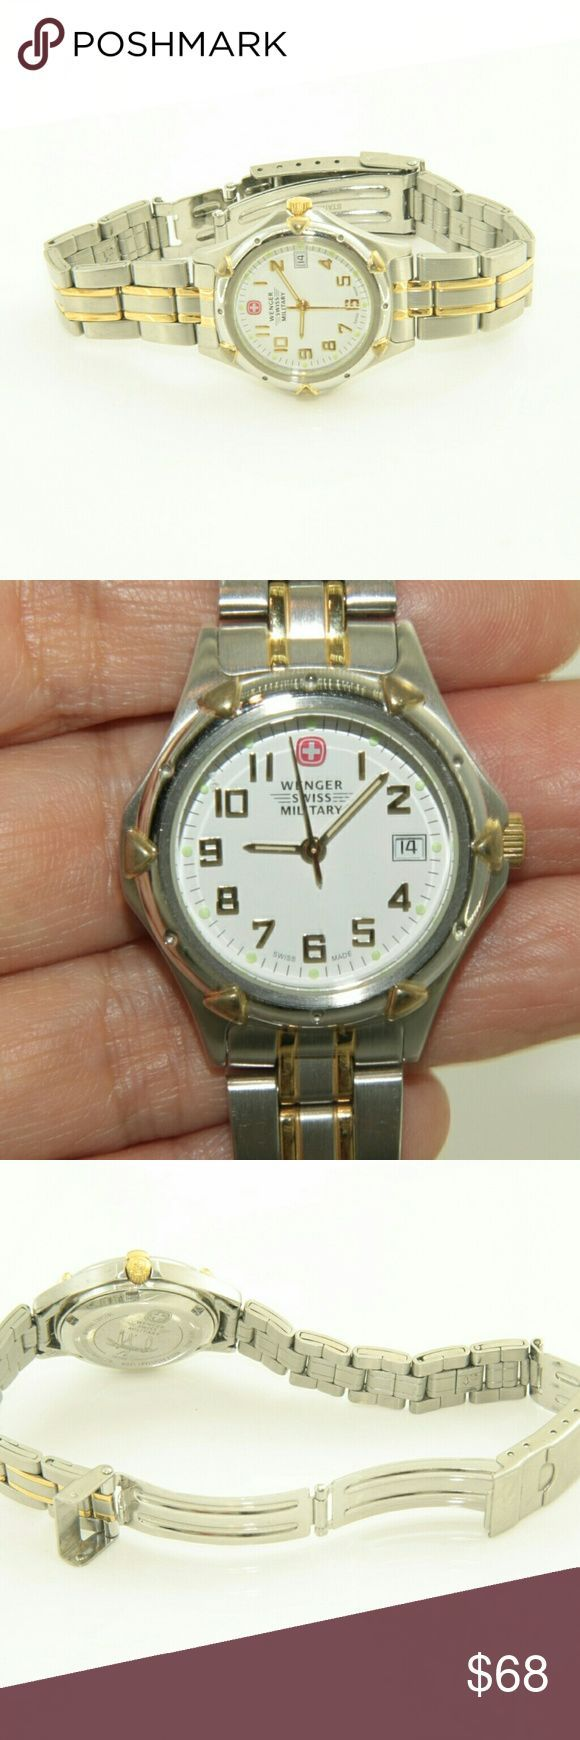 Wenger Swiss Military Watch Wenger Swiss Military Watch.  Used item: any wear is shown in pictures.  Works fine. Is ticking away.  Mineral crystal. Water resistant. All stainless steel.  Bundle Up!  Offers always welcome. Wenger Accessories Watches Sale! Up to 75% OFF! Shop at Stylizio for women's and men's designer handbags, luxury sunglasses, watches, jewelry, purses, wallets, clothes, underwear & more!